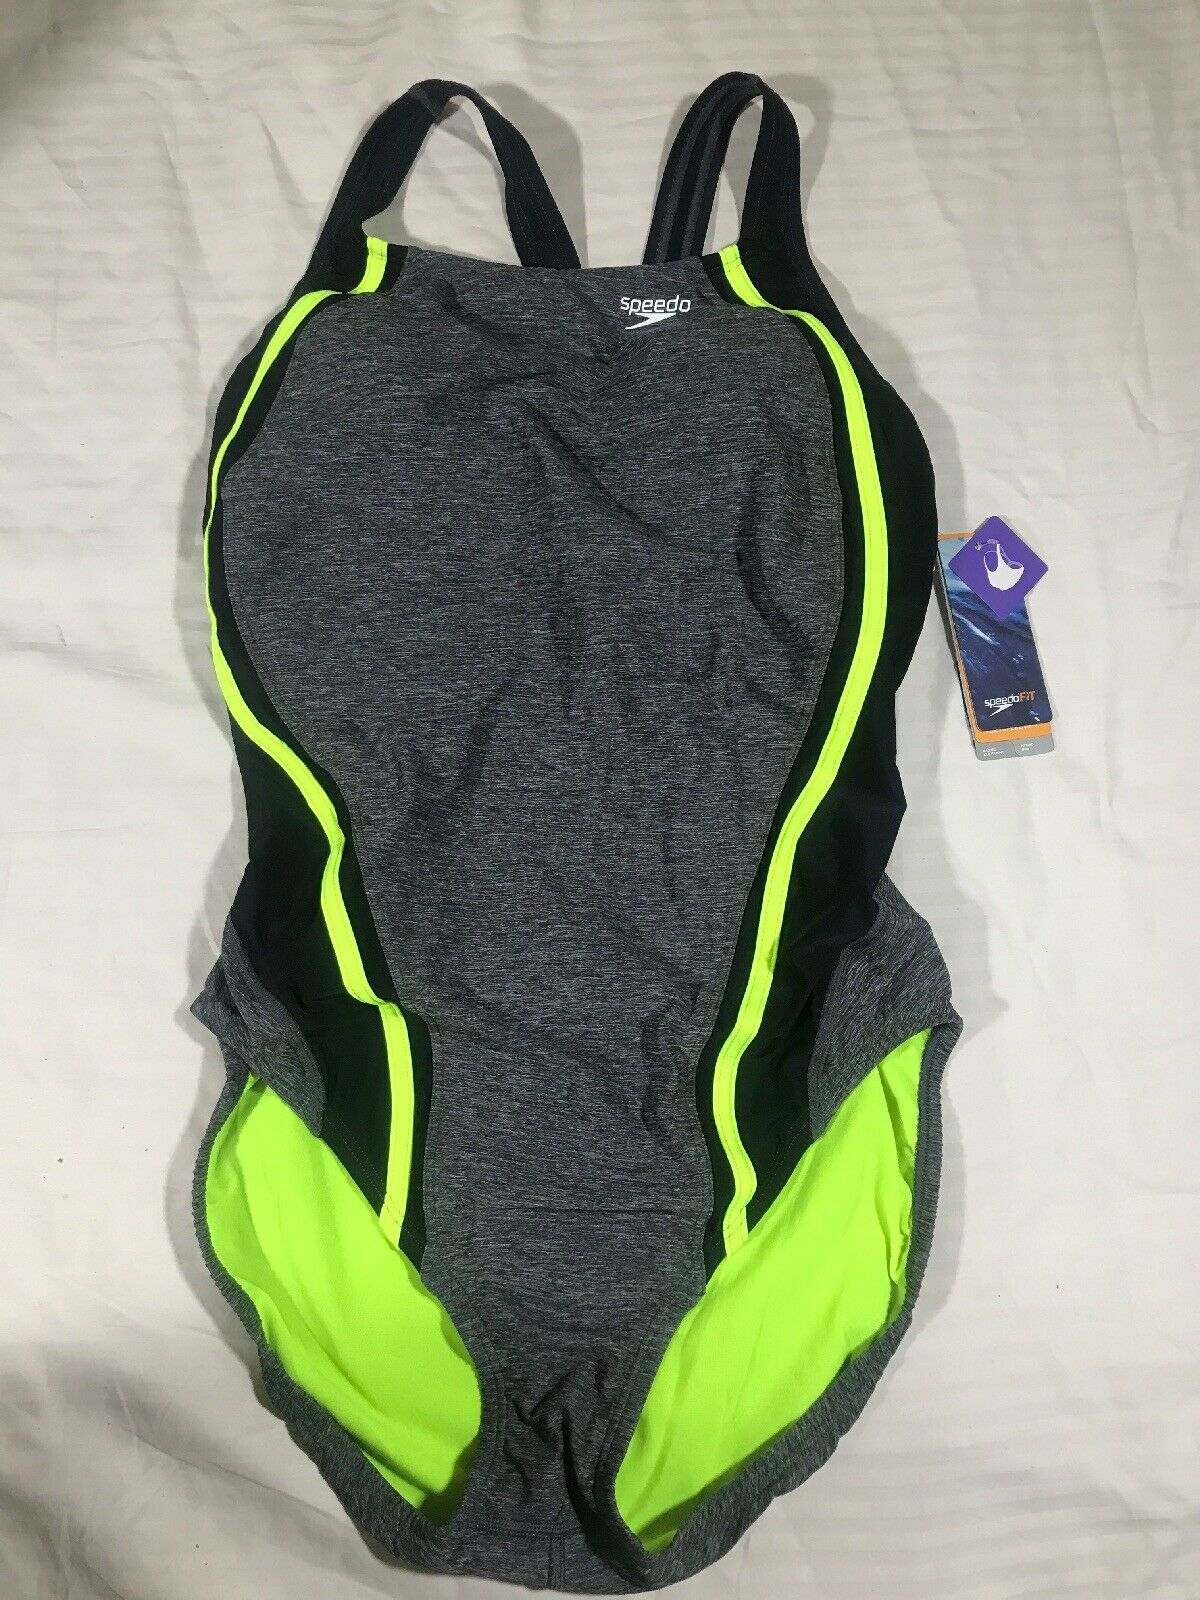 NWT Speedo Swimsuit 1pc Athletic Size 14 Hydro Bra $78 Pink Quantum Splice